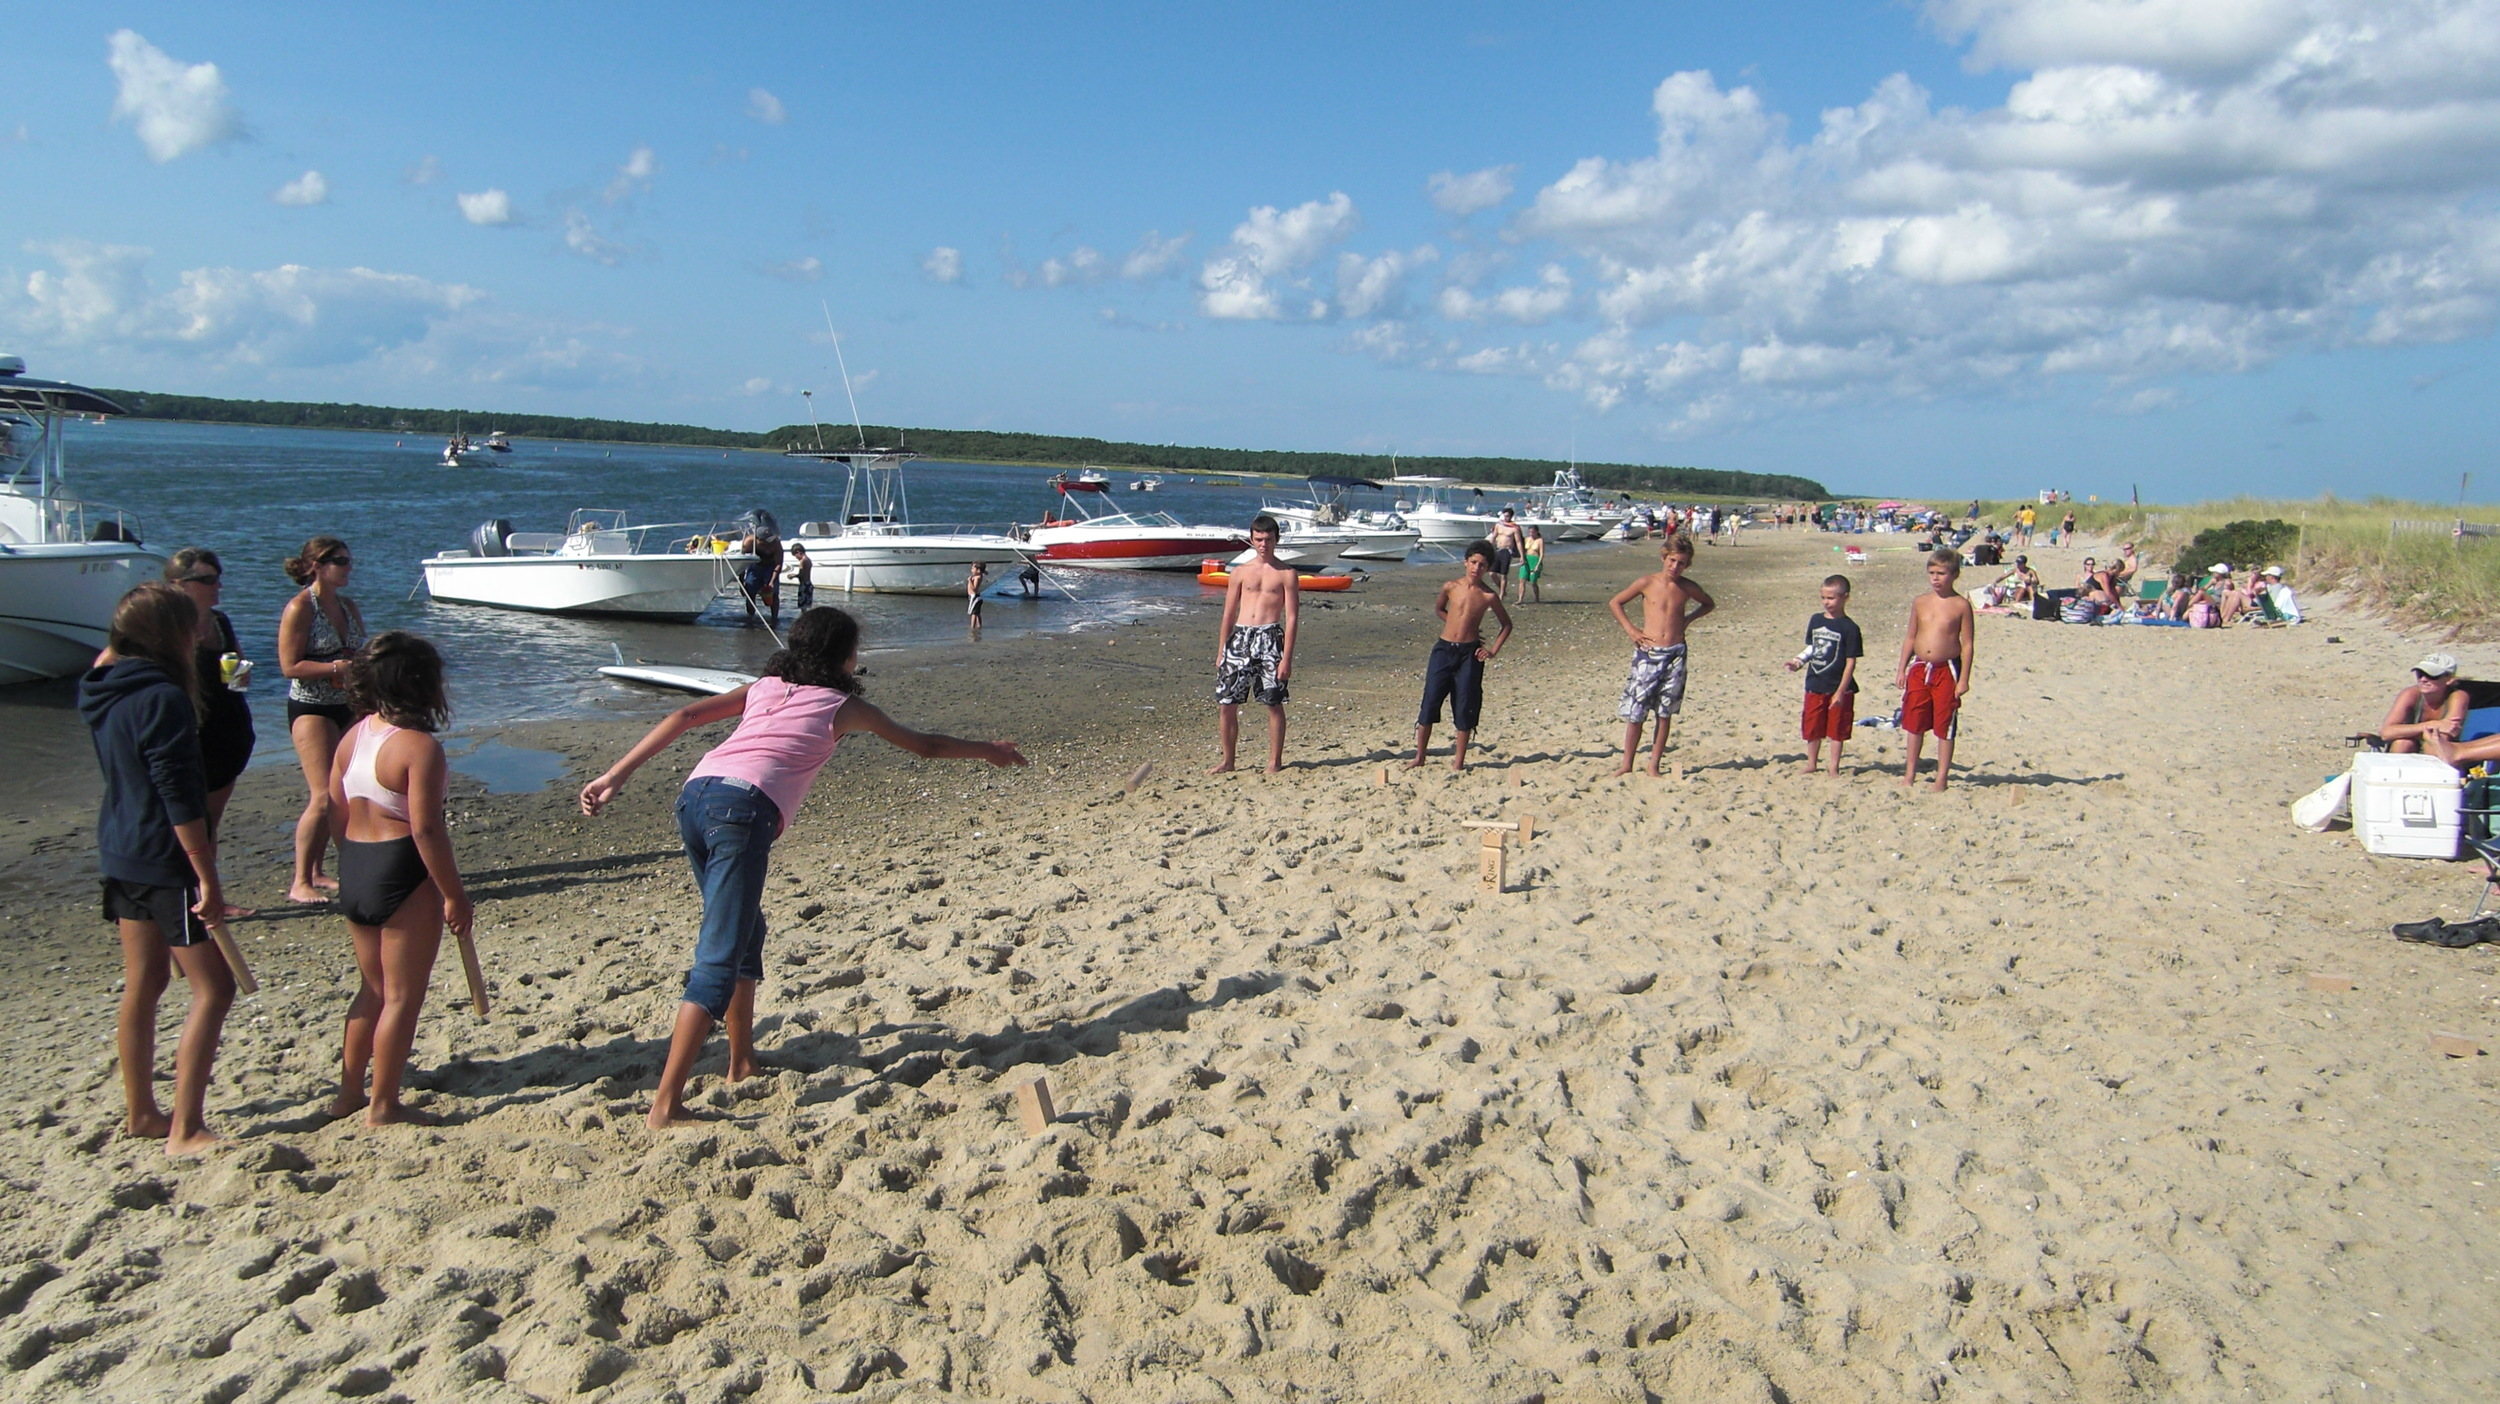 V:King is the perfect beach game and great for kids of all ages.